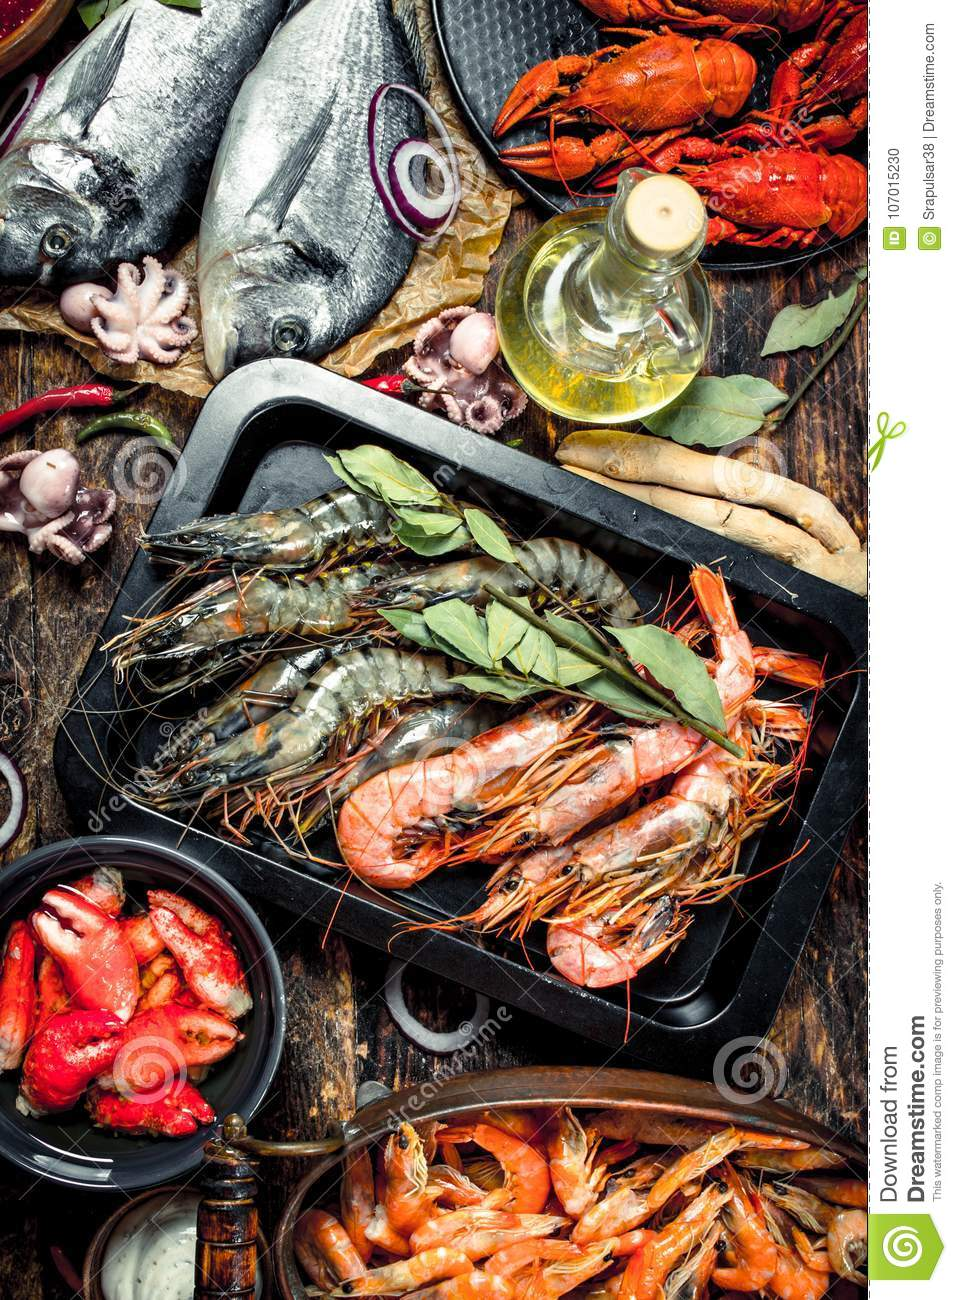 Seafood with spices.